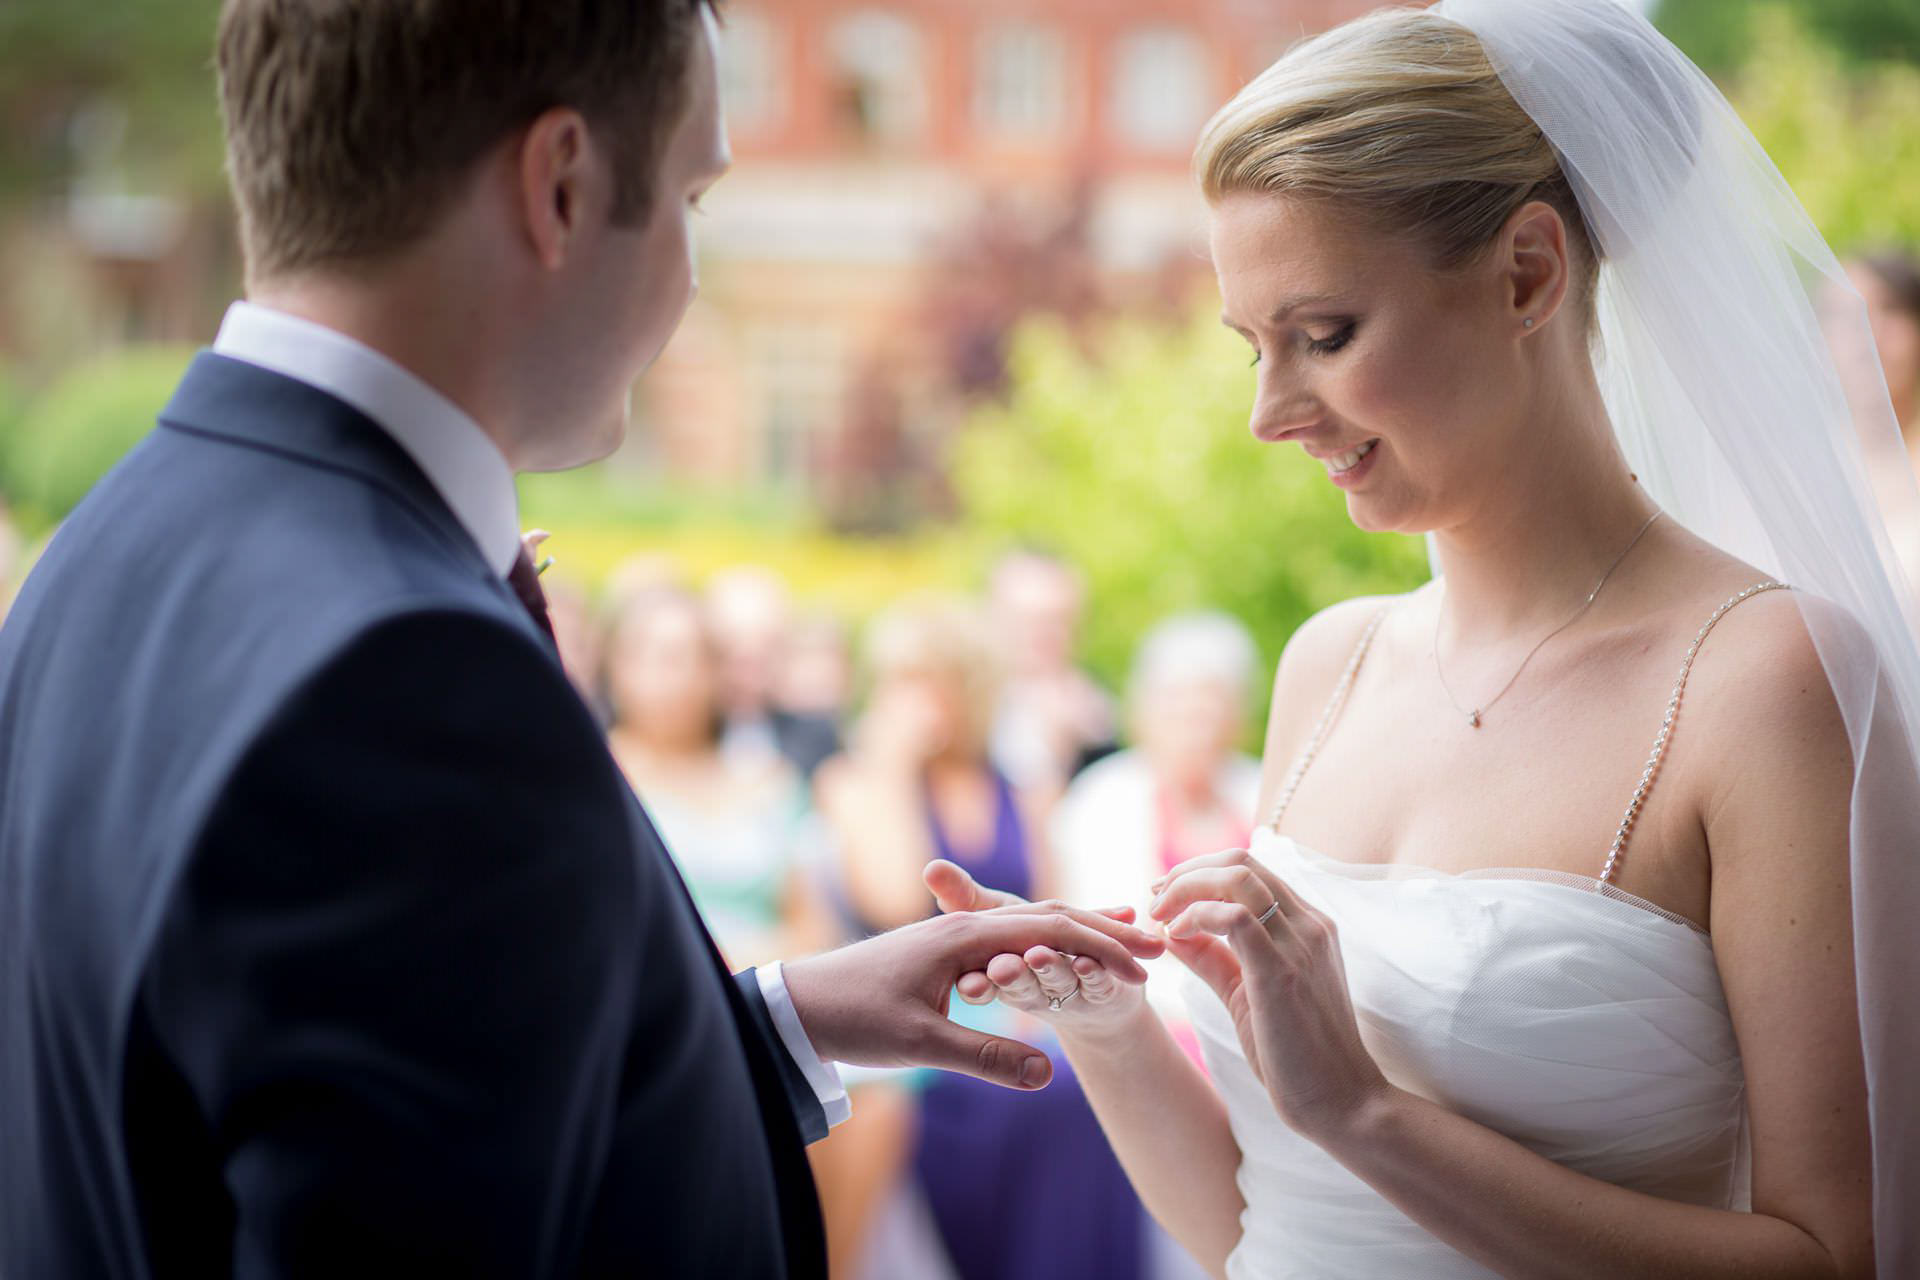 Wotton House wedding bride puts ring on grooms finger